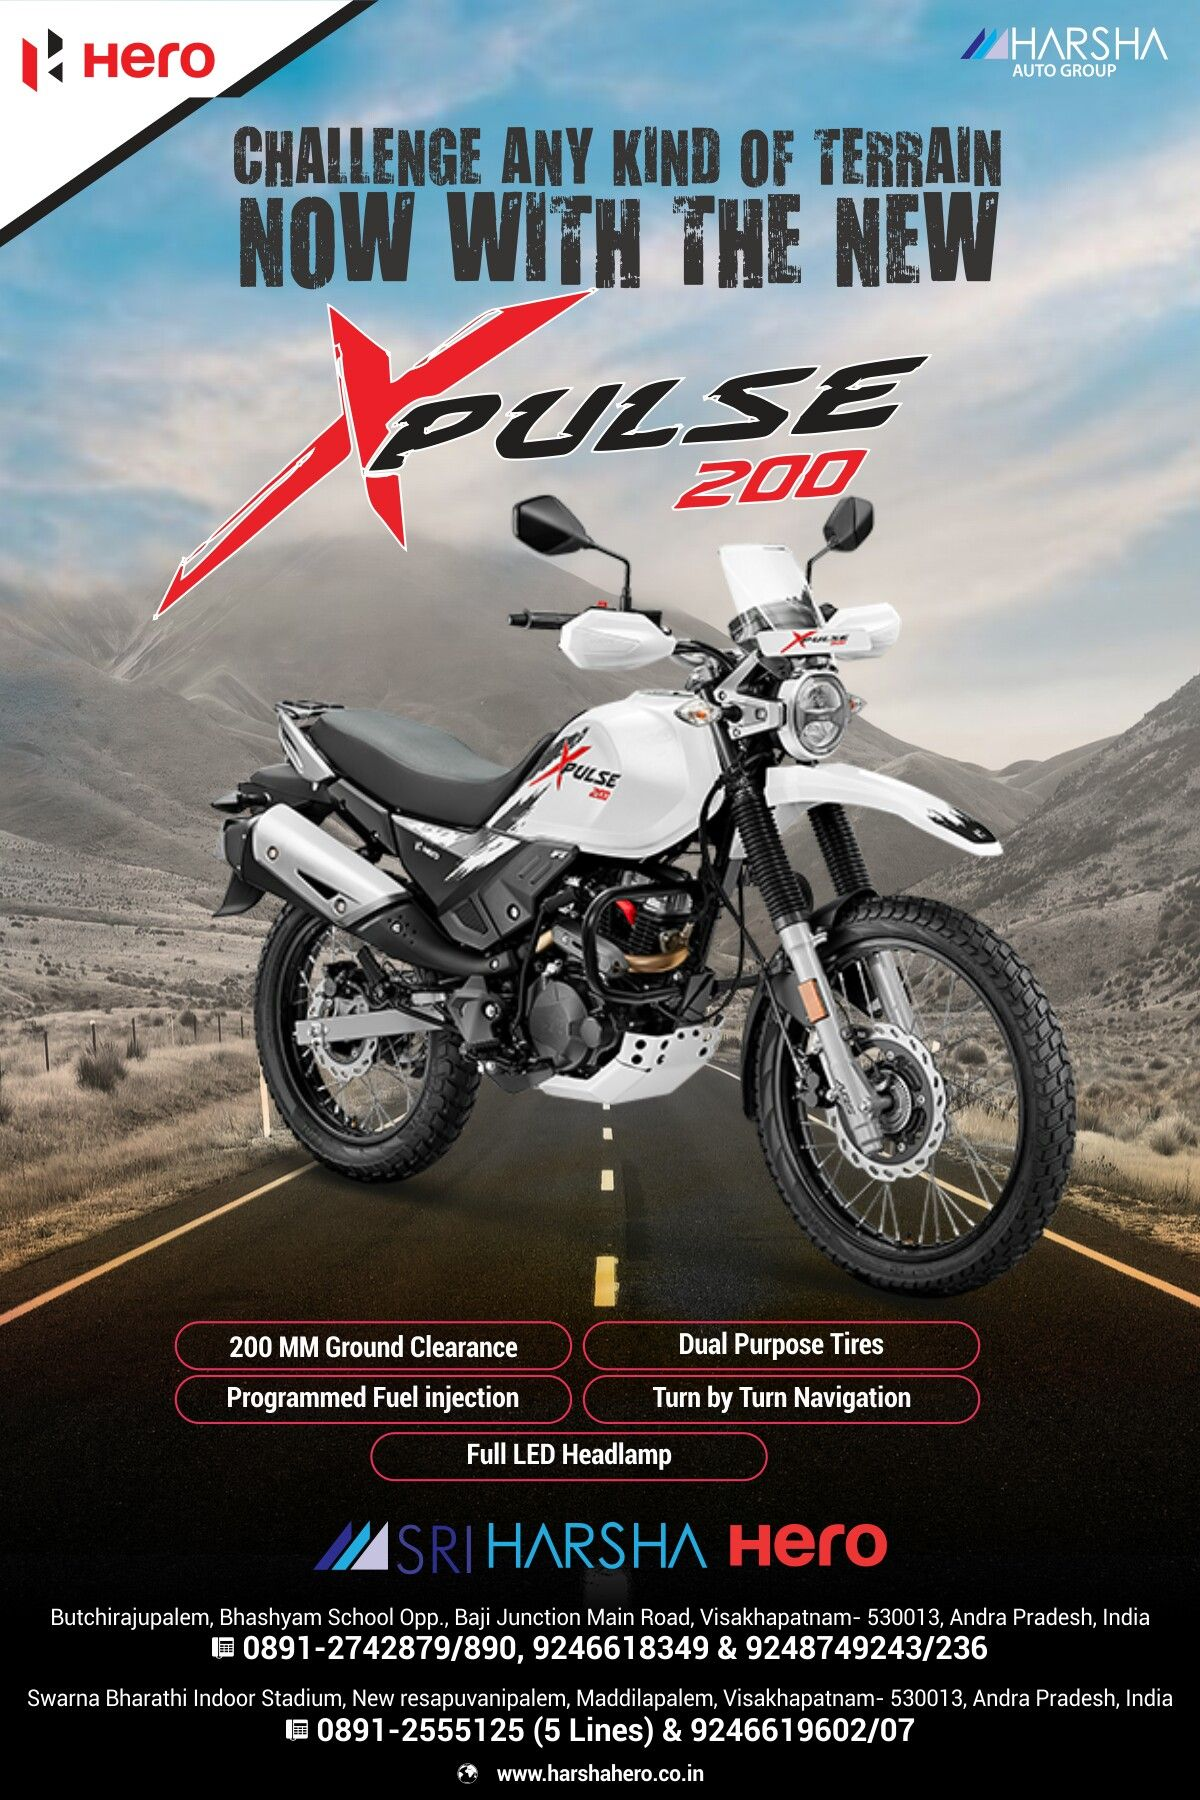 Challenge Any Kind Of Terrain Now With The New Hero Xpulse 200